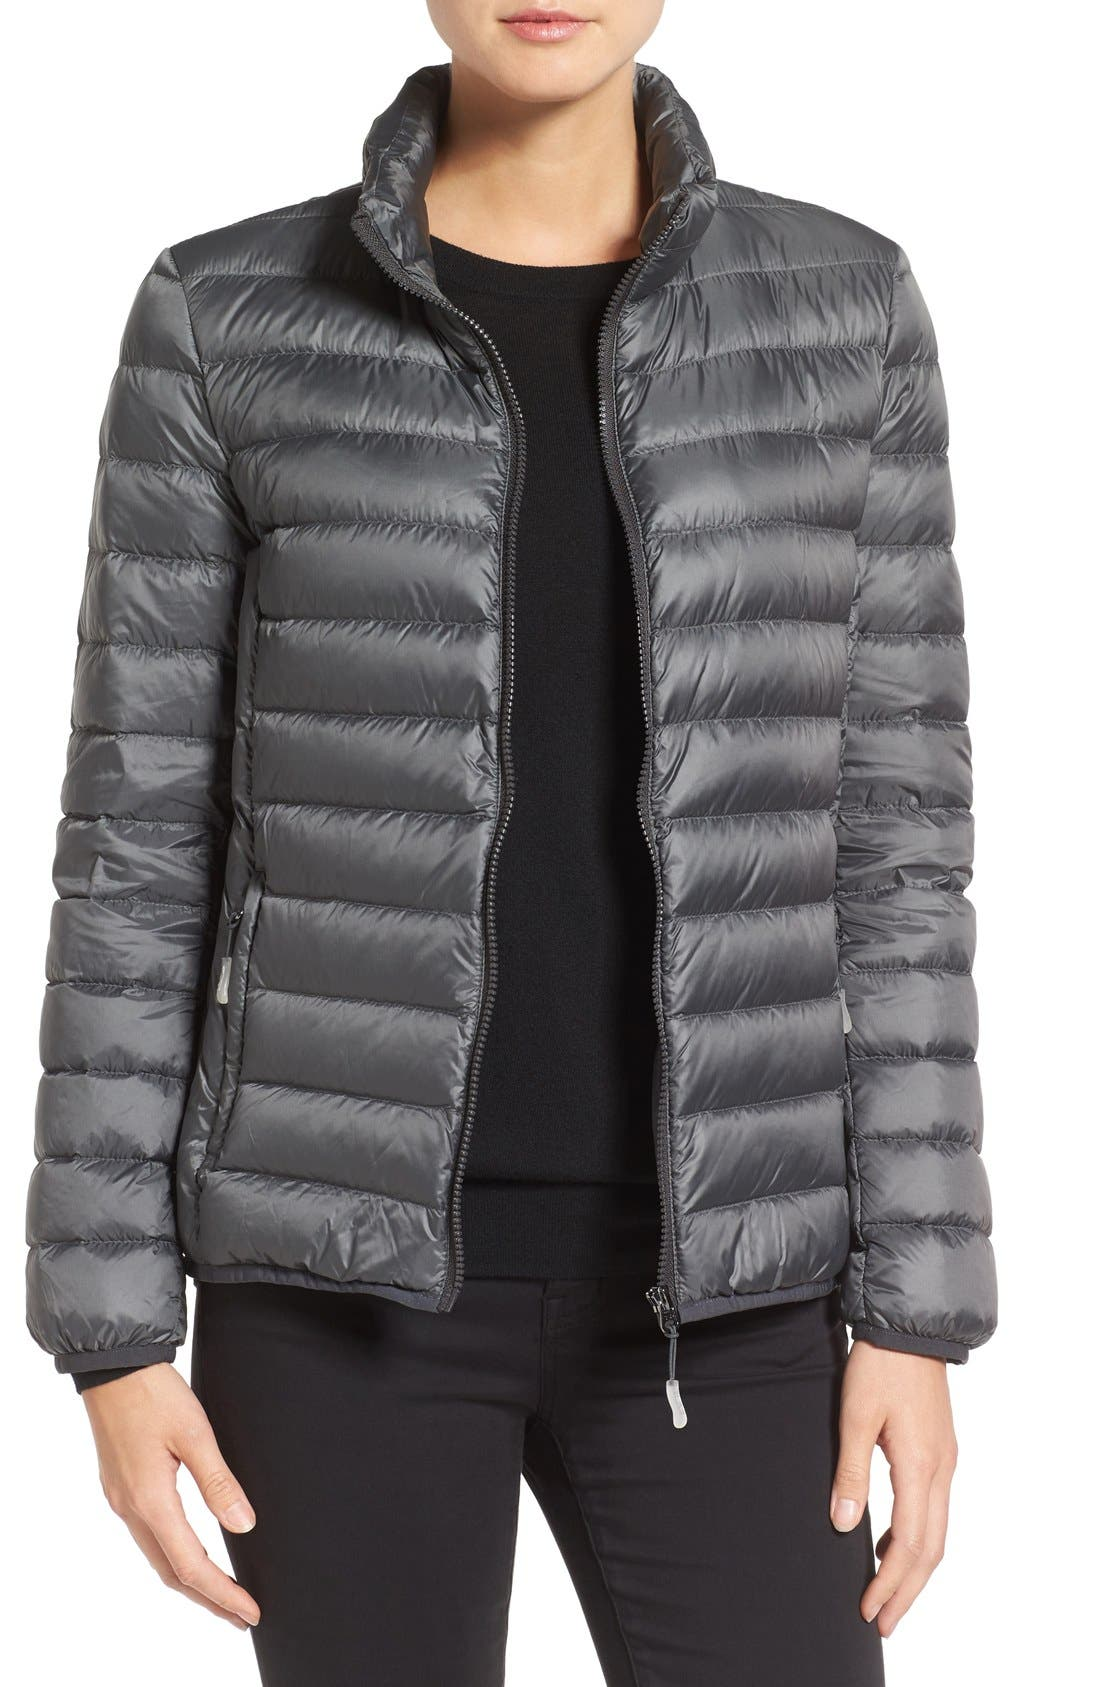 Tumi 'Pax on the Go' Packable Quilted Jacket